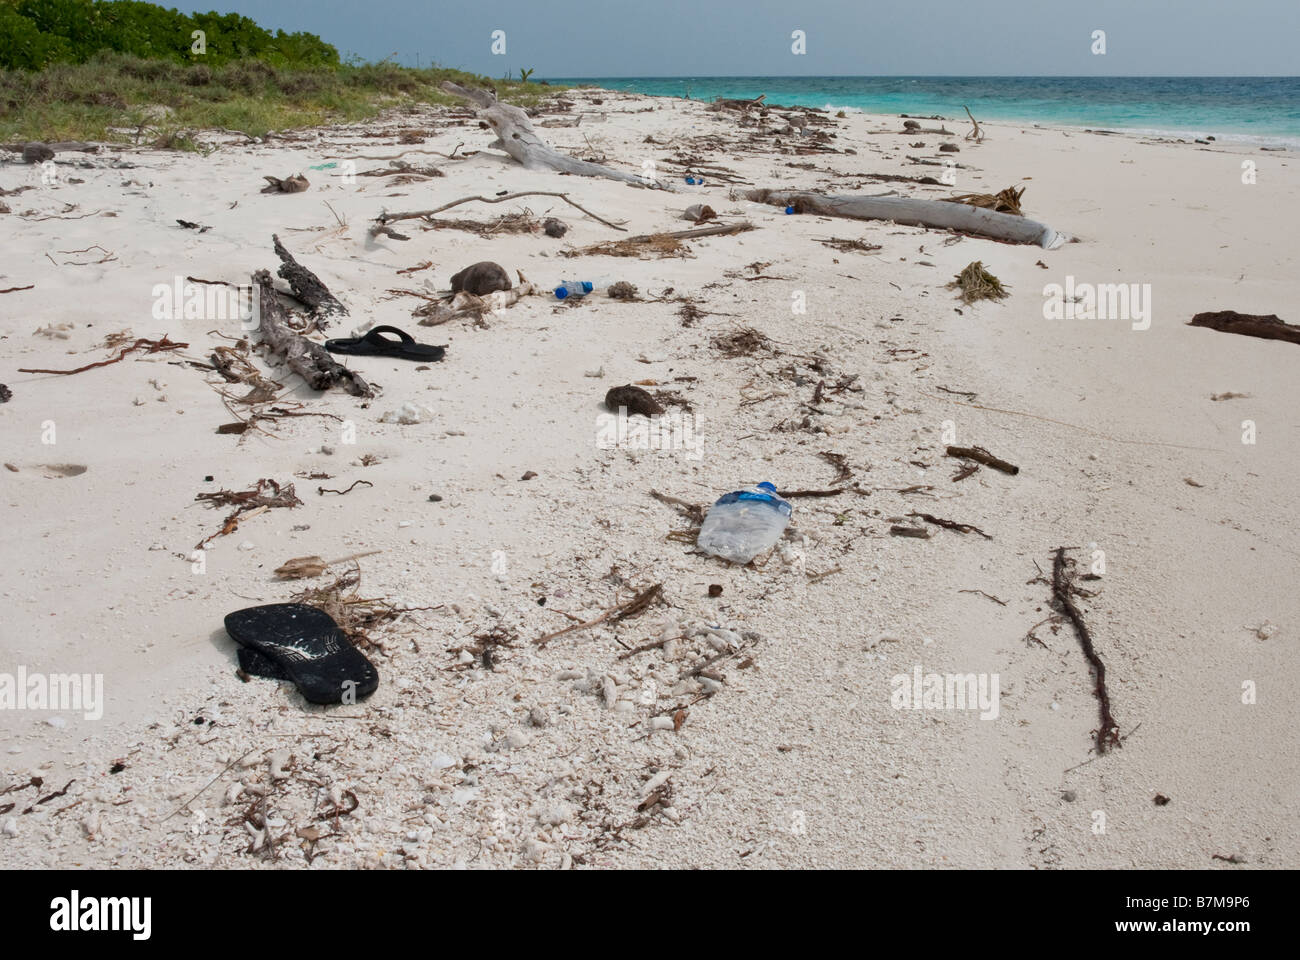 Plastic litter and driftwood washed up on a tropical beach in the Maldives. - Stock Image